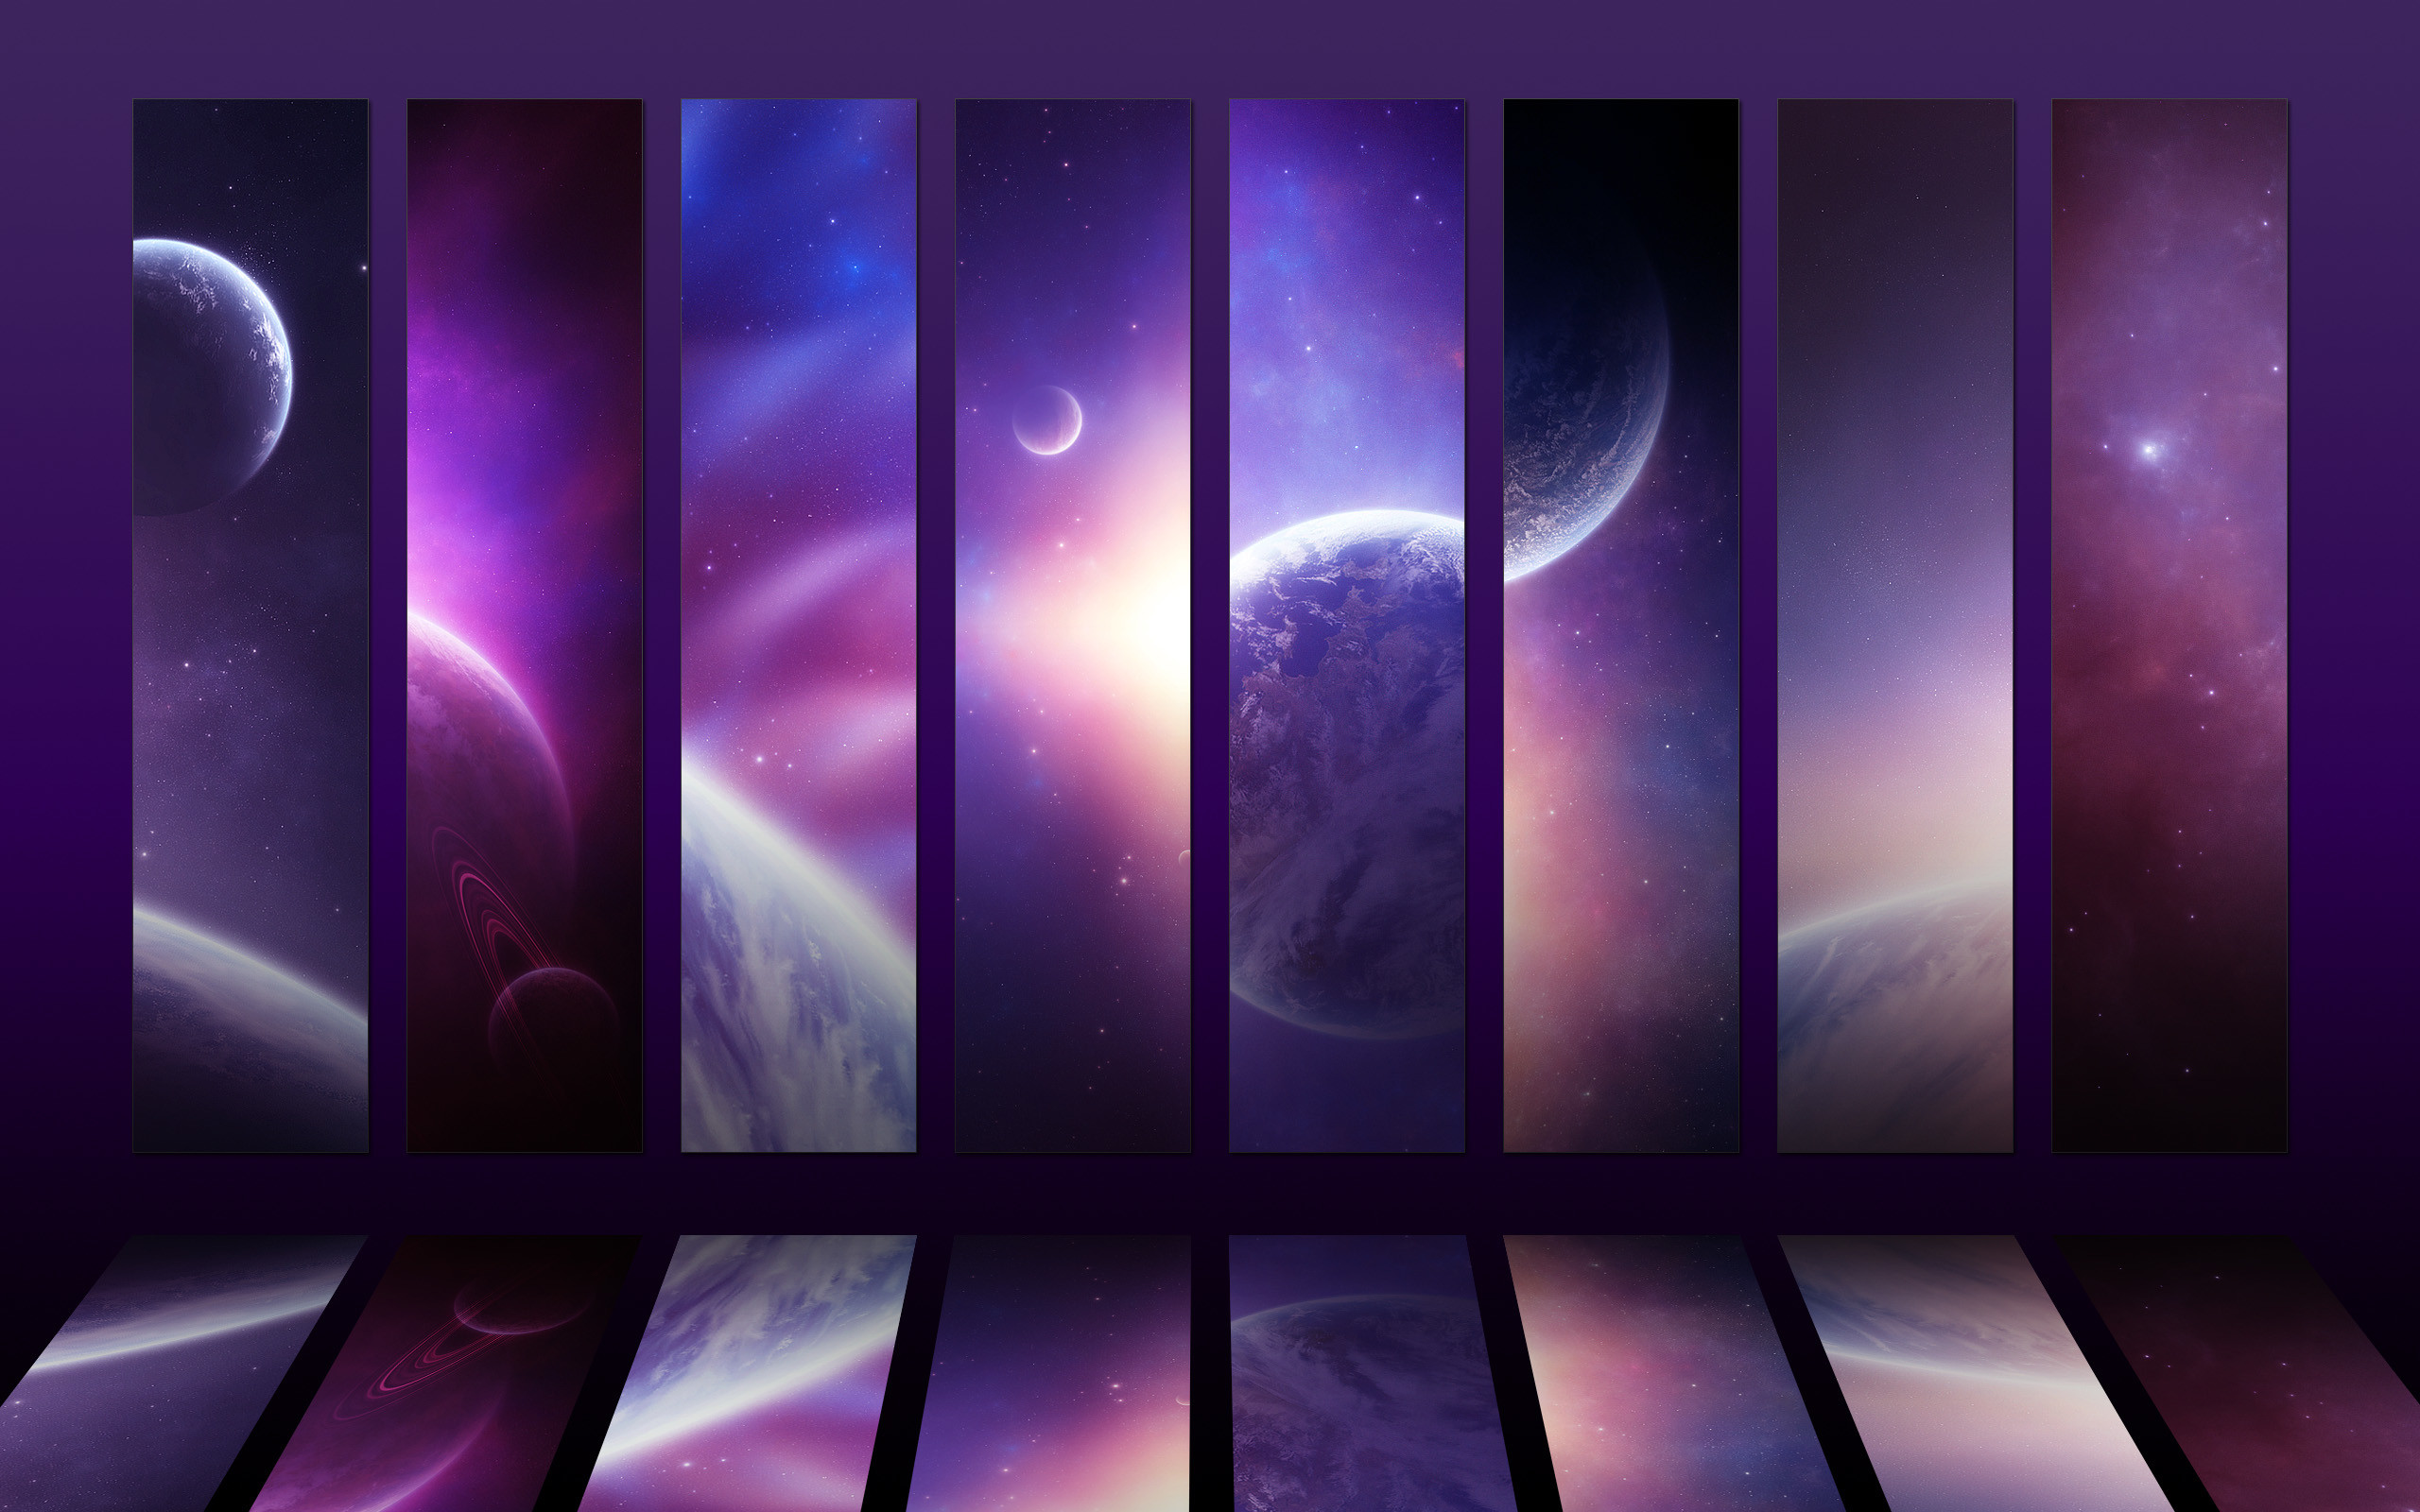 1000+ Images About Purple On Pinterest | The Depths, Google And ..